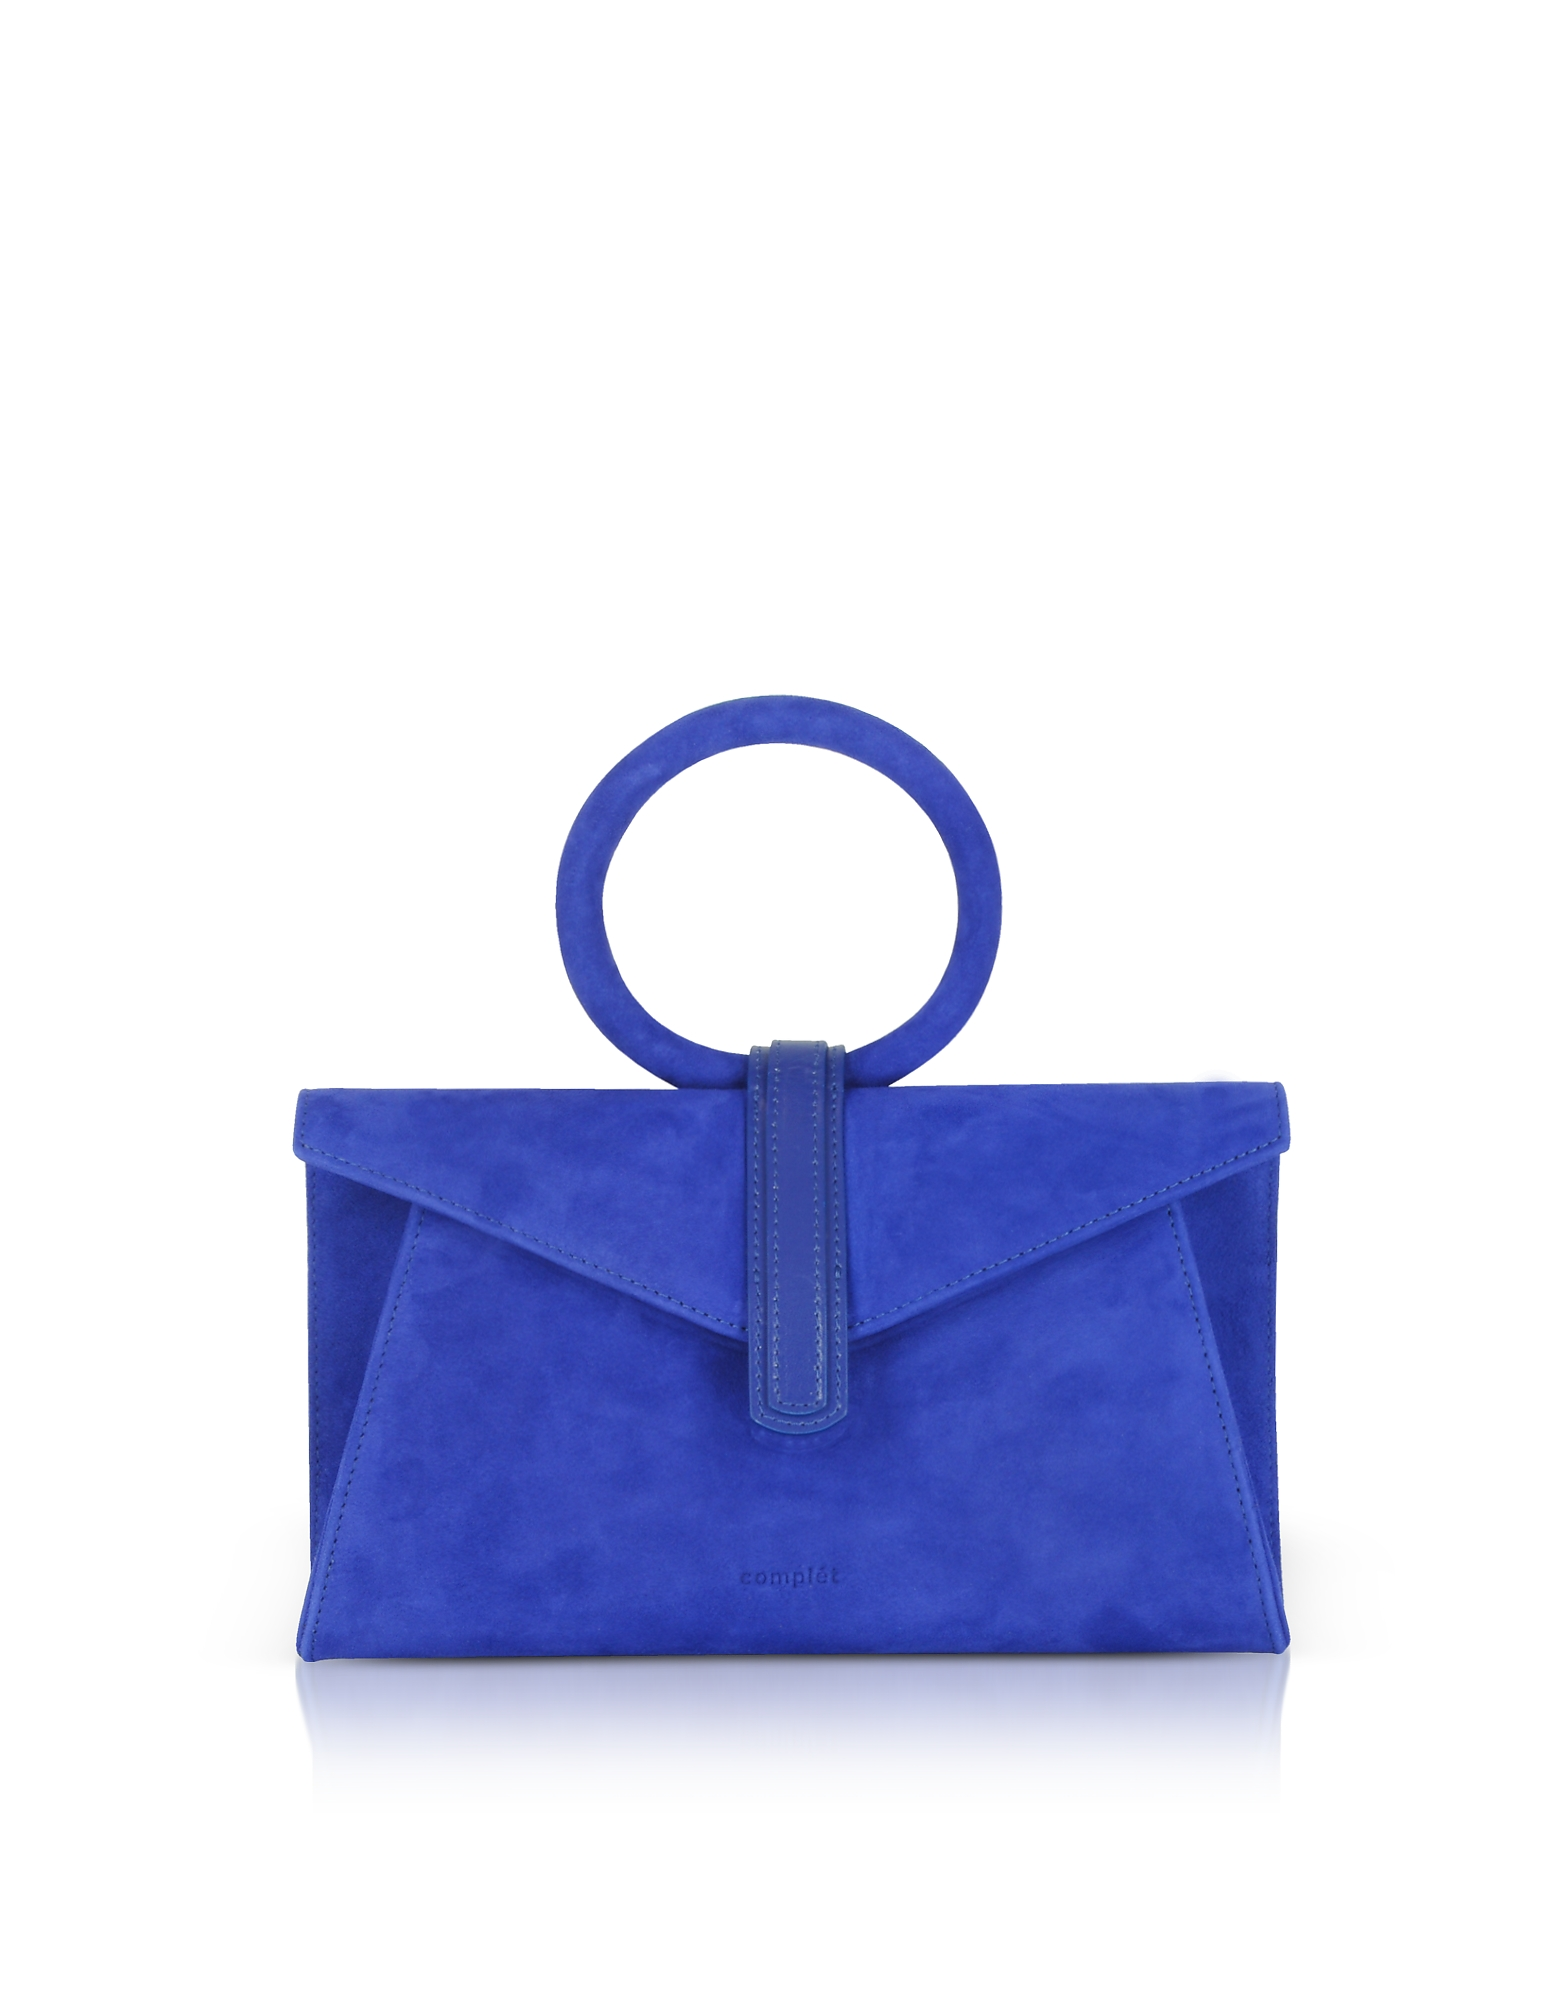 Complet Handbags, Royal Blue Suede Valery Mini Clutch Bag w/Shoulder Strap